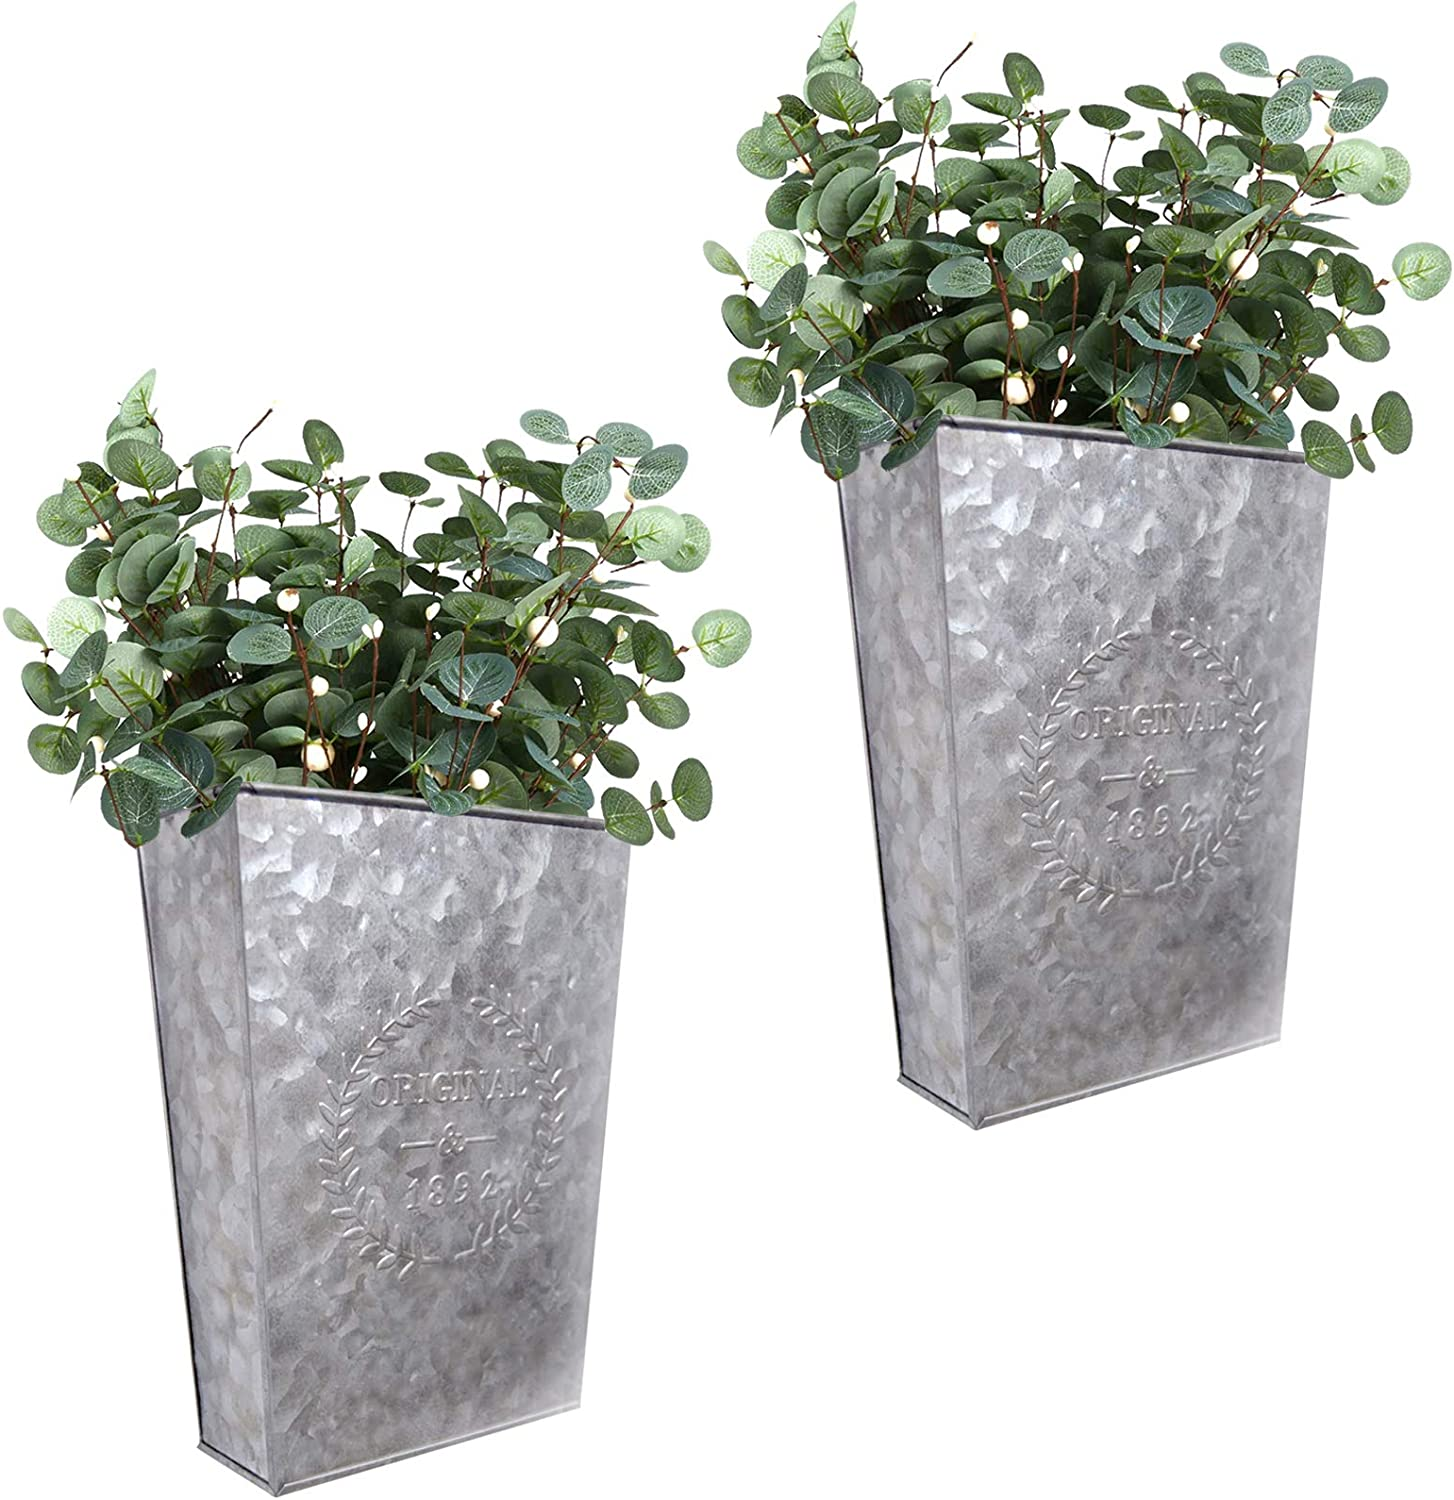 LESEN Galvanized Metal Wall Planter,Farmhouse Wall Decor Hanging Wall Vase Pocket Planters Flowers Holder Country Rustic Home Wall Decor,Set of 2…